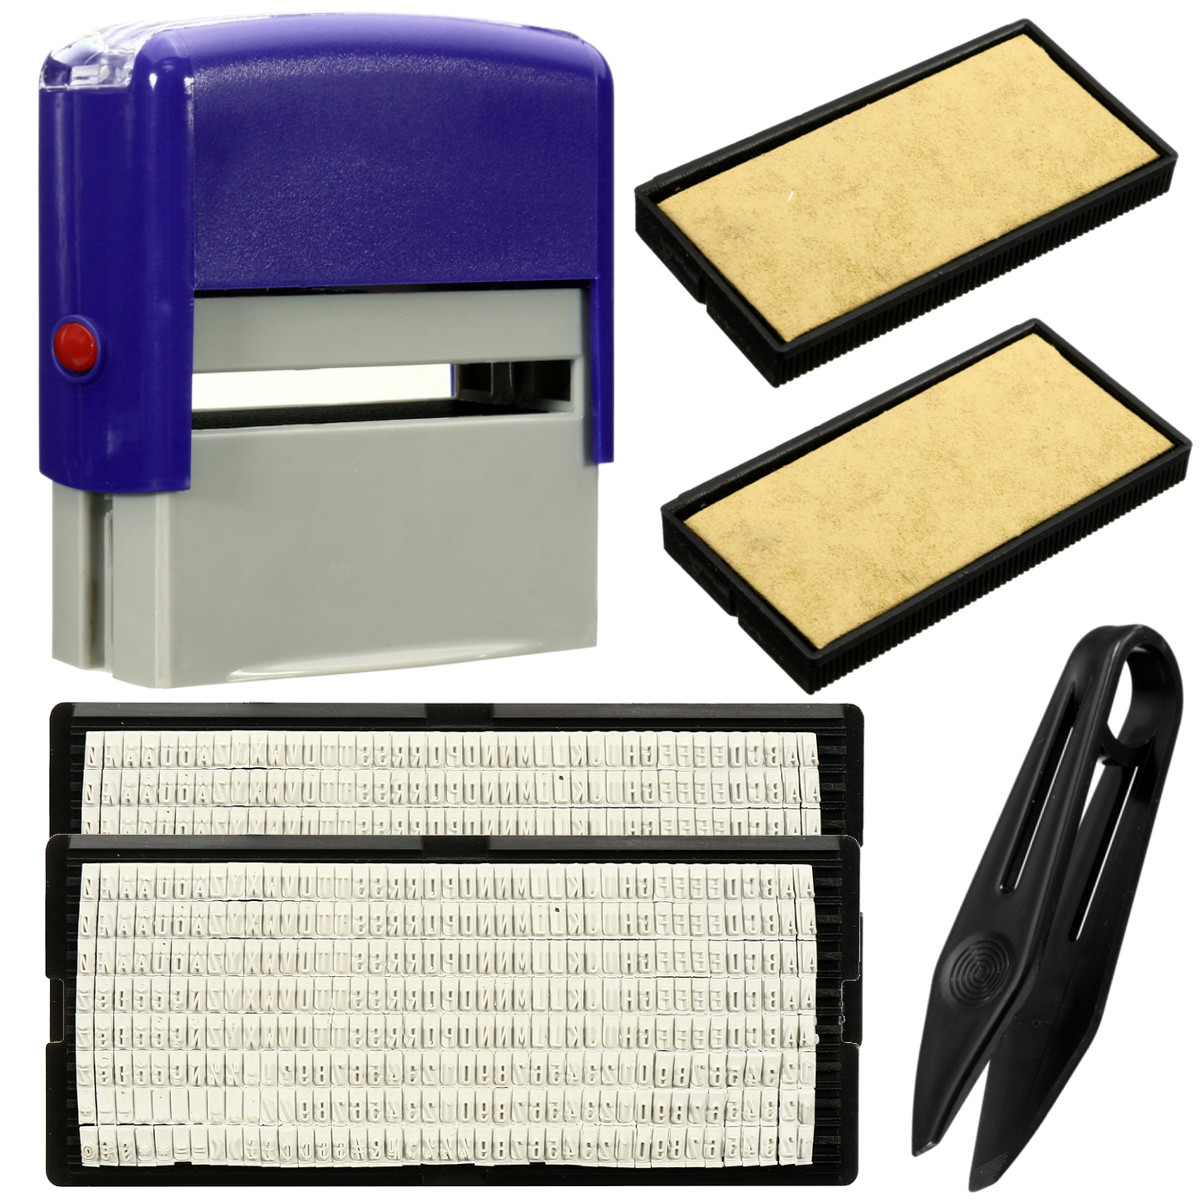 6PCS Set DIY Personalised Self-Inking Rubber Stamp Kit Customized Business Name Address-3 Lines